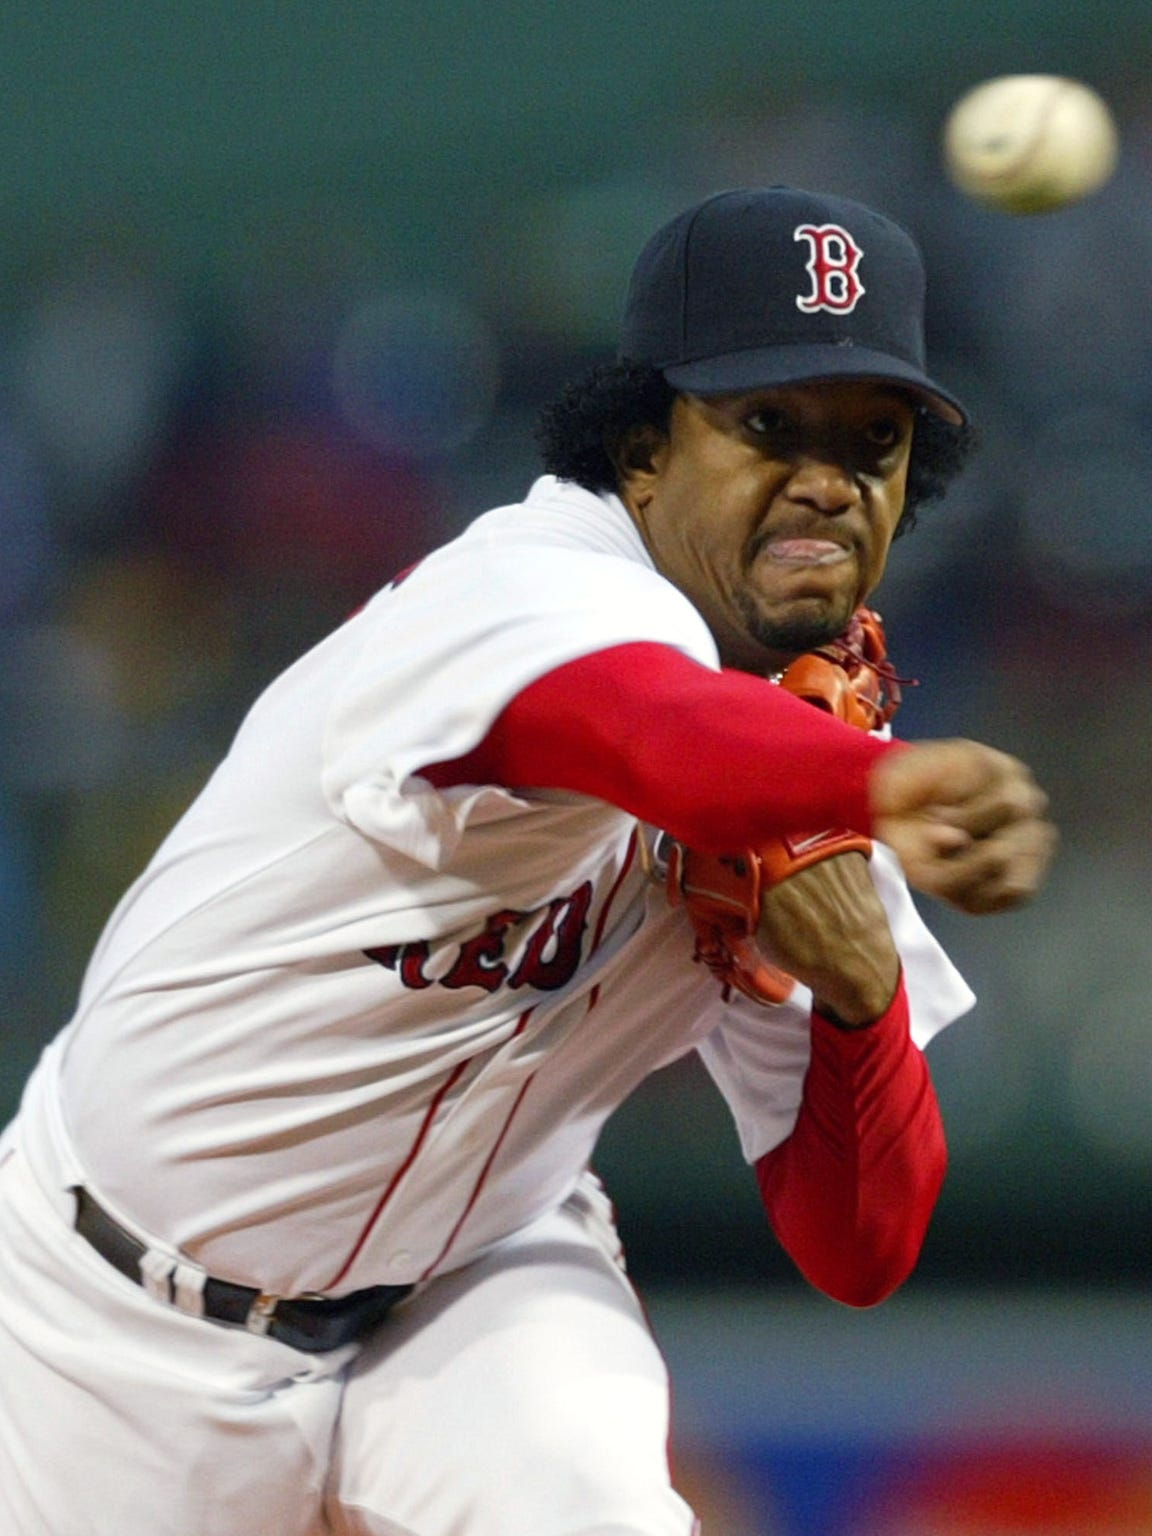 Pedro Martinez was elected to the BaseballHall of Fame